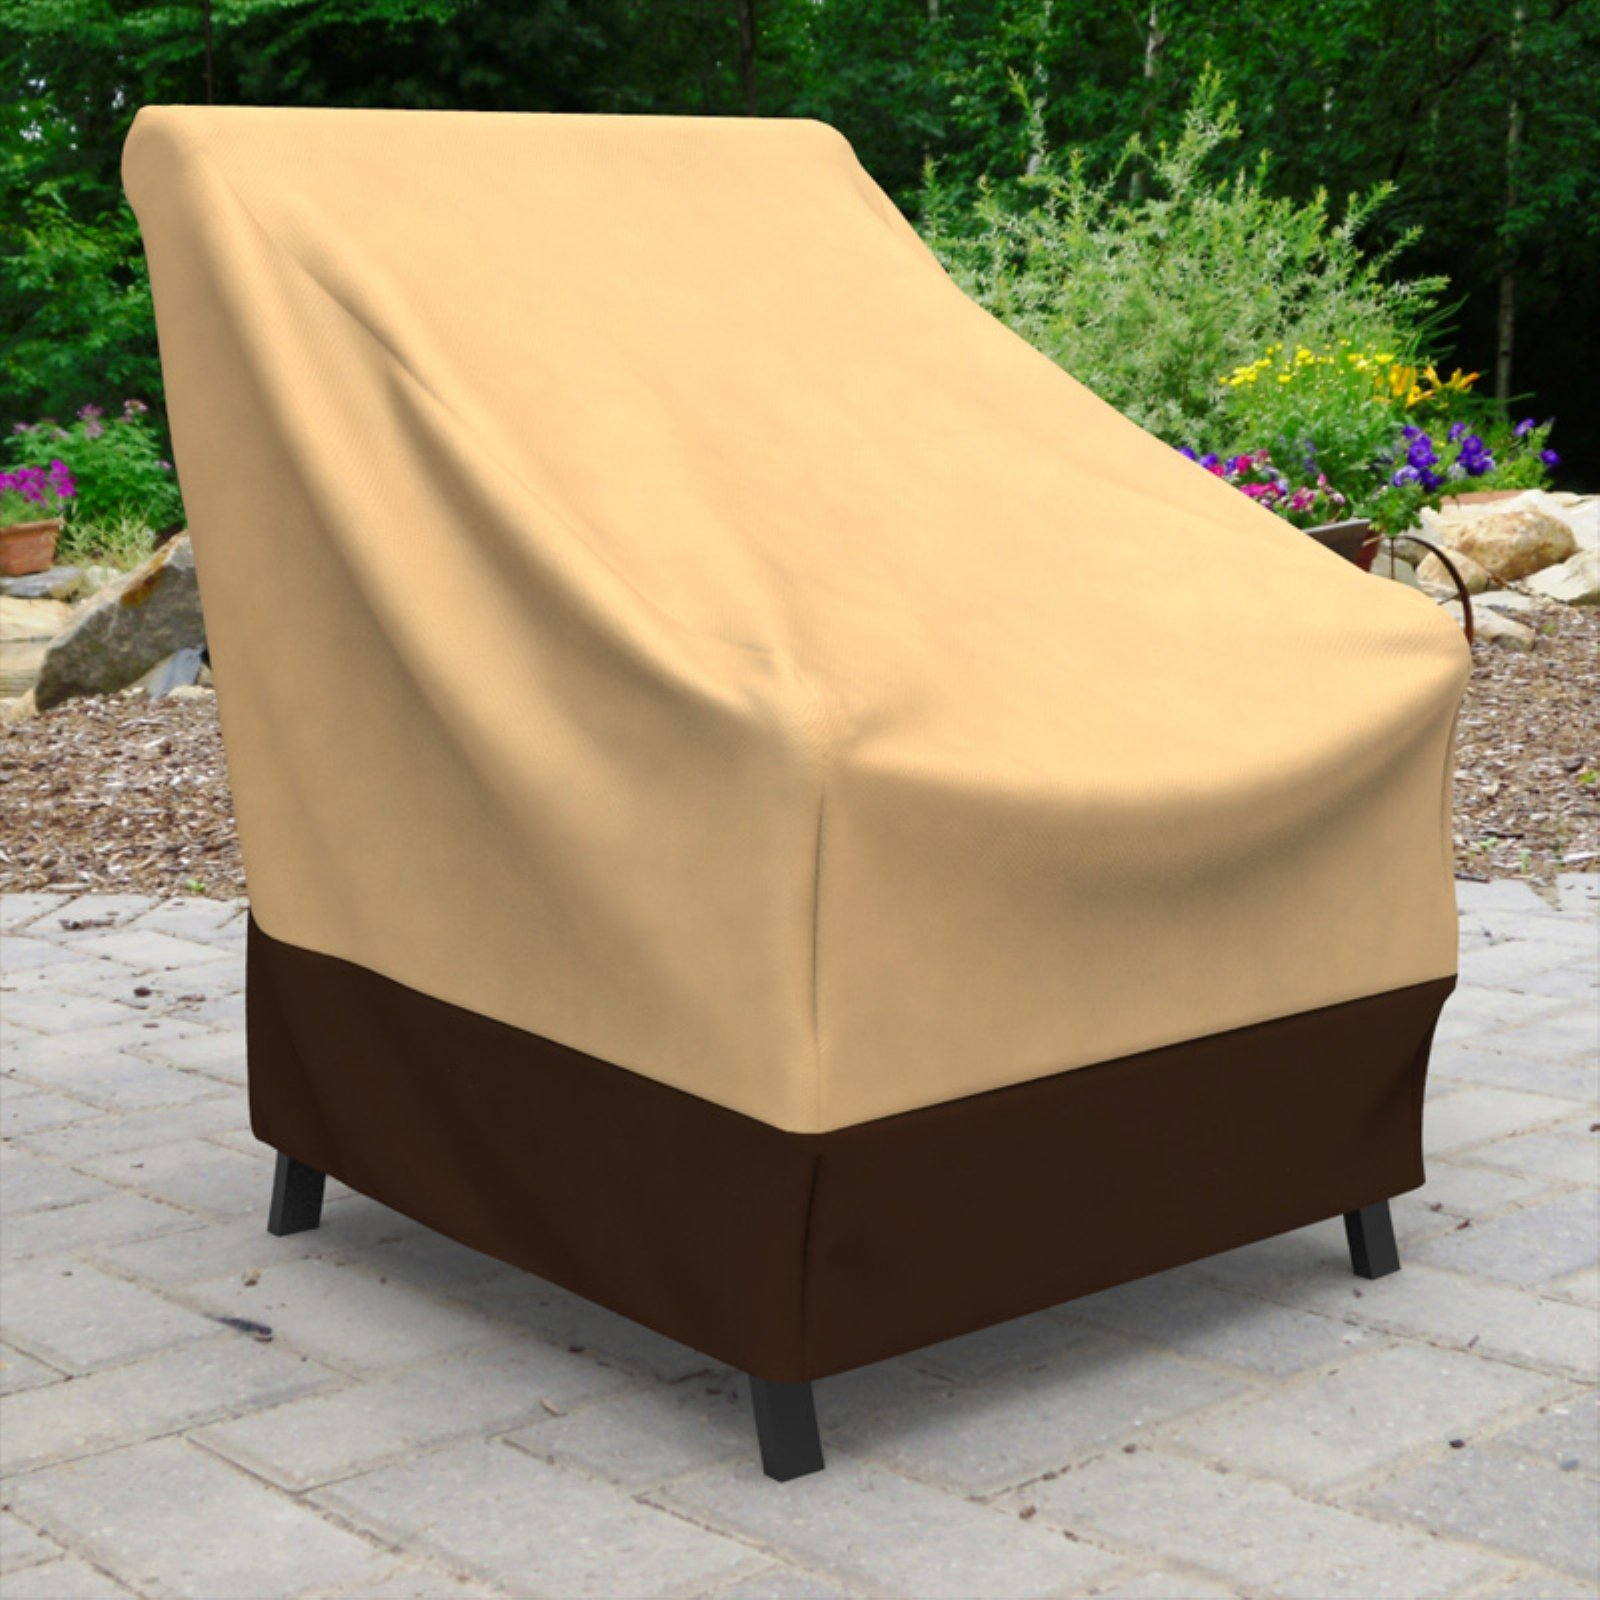 Budge Industries All-Seasons Polypropylene Outdoor Patio Chair Cover